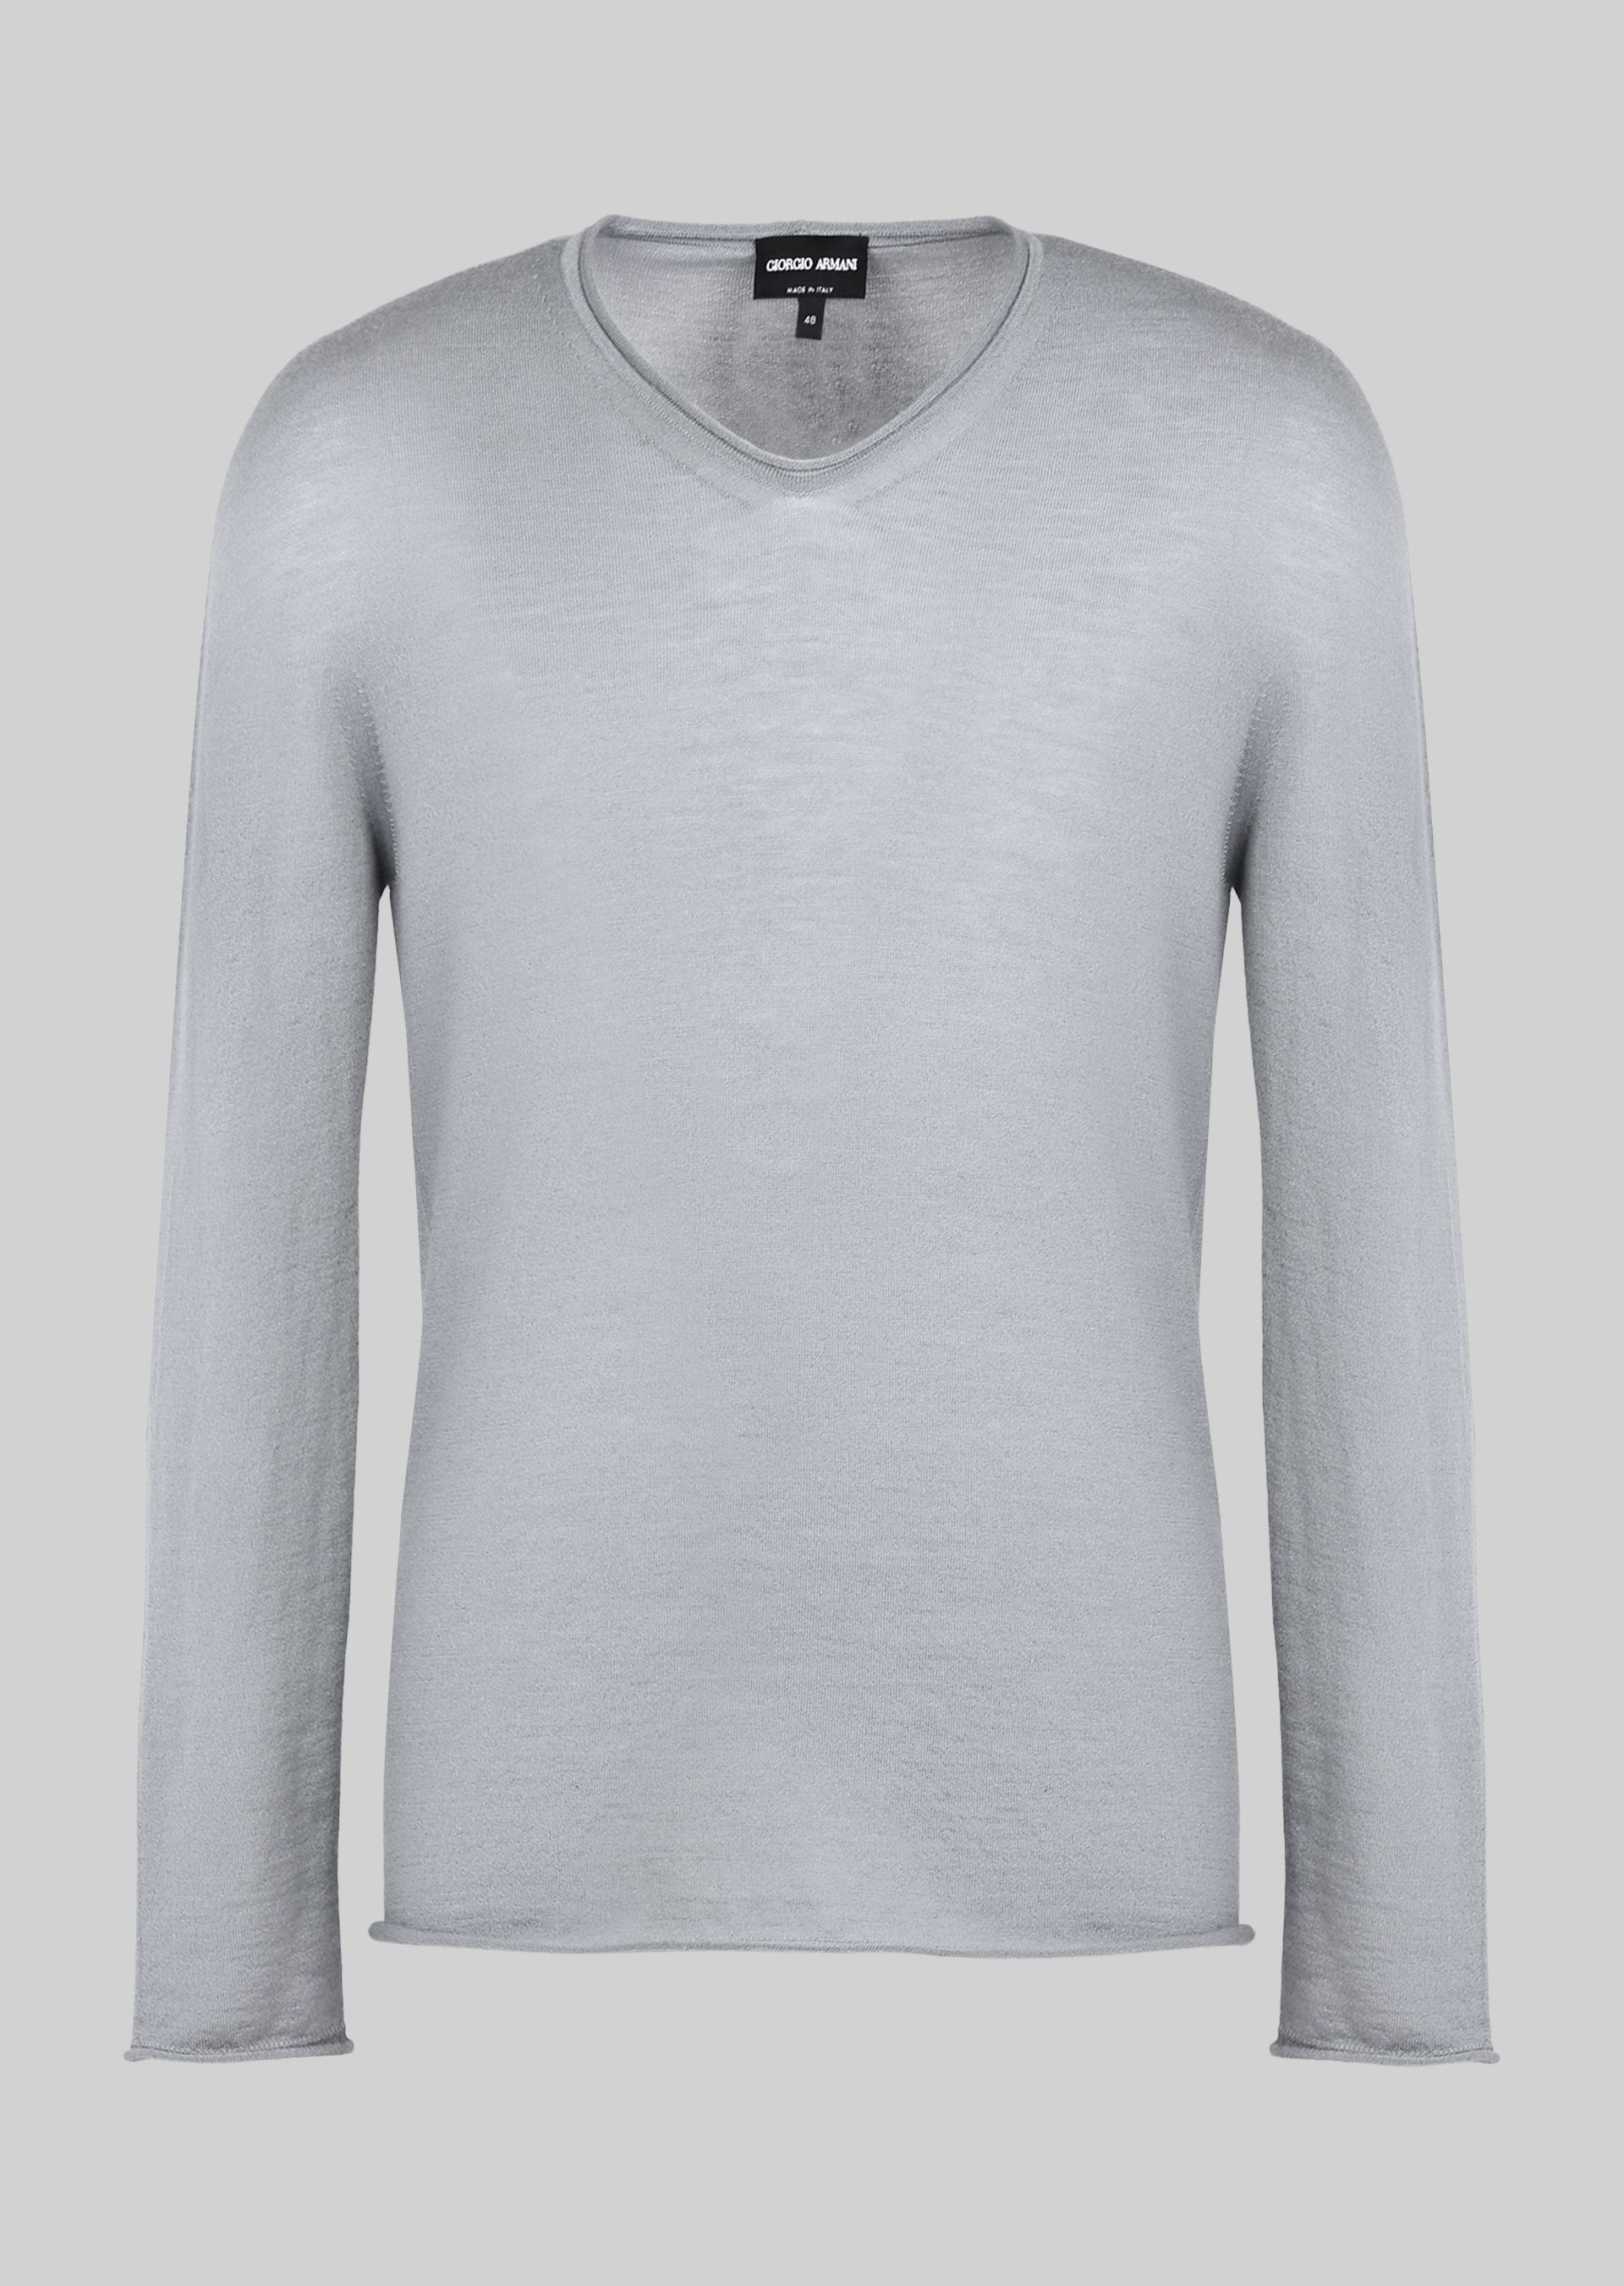 CASHMERE BLEND SWEATER for Men | Giorgio Armani